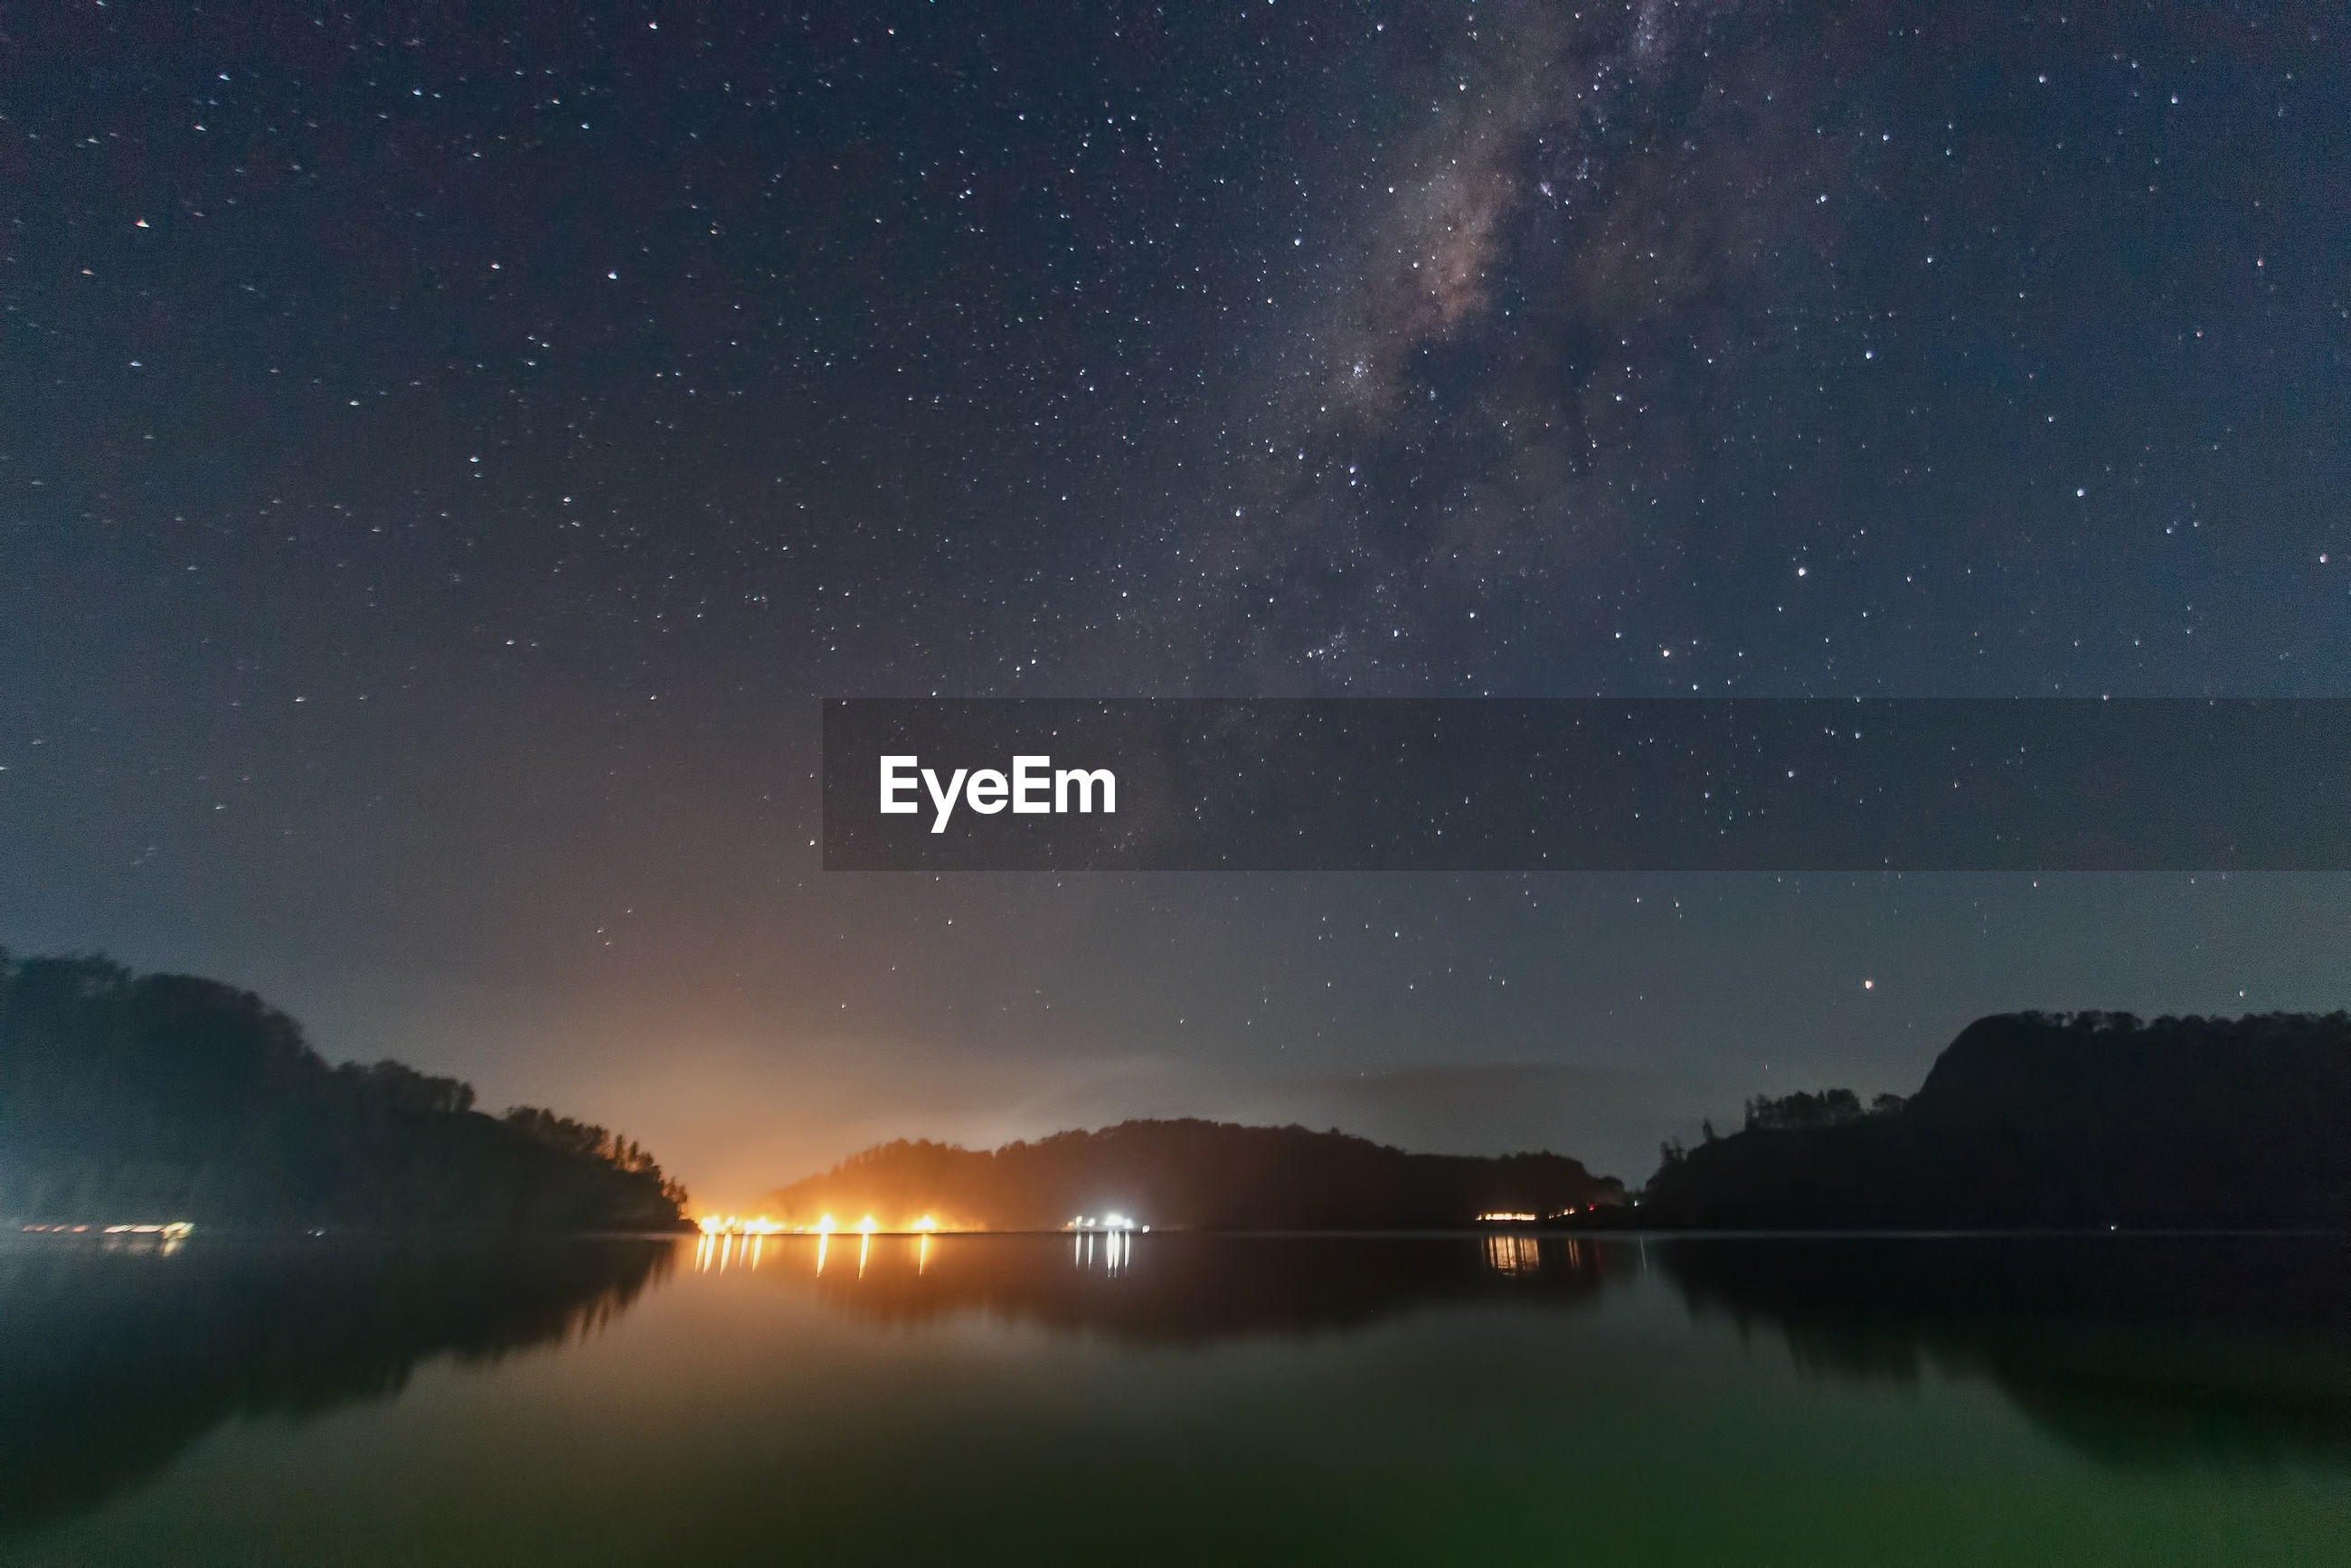 SCENIC VIEW OF LAKE AGAINST STAR FIELD IN SKY AT NIGHT